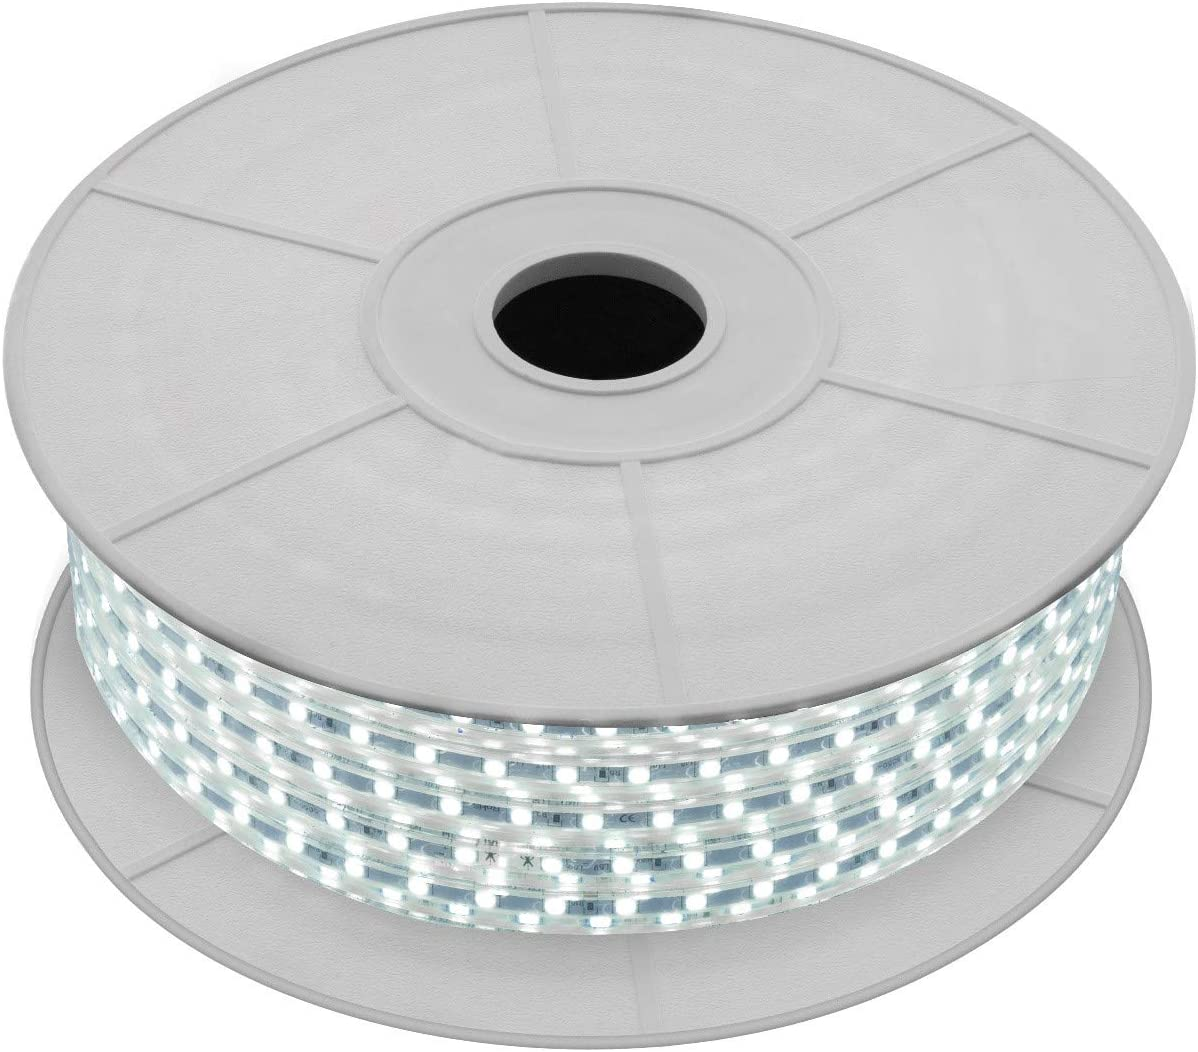 LEDKIA LIGHTING Bobina de Tira LED Regulable 220V AC 60 LED/m 50m Blanco Frío IP65 Corte a los 100cm